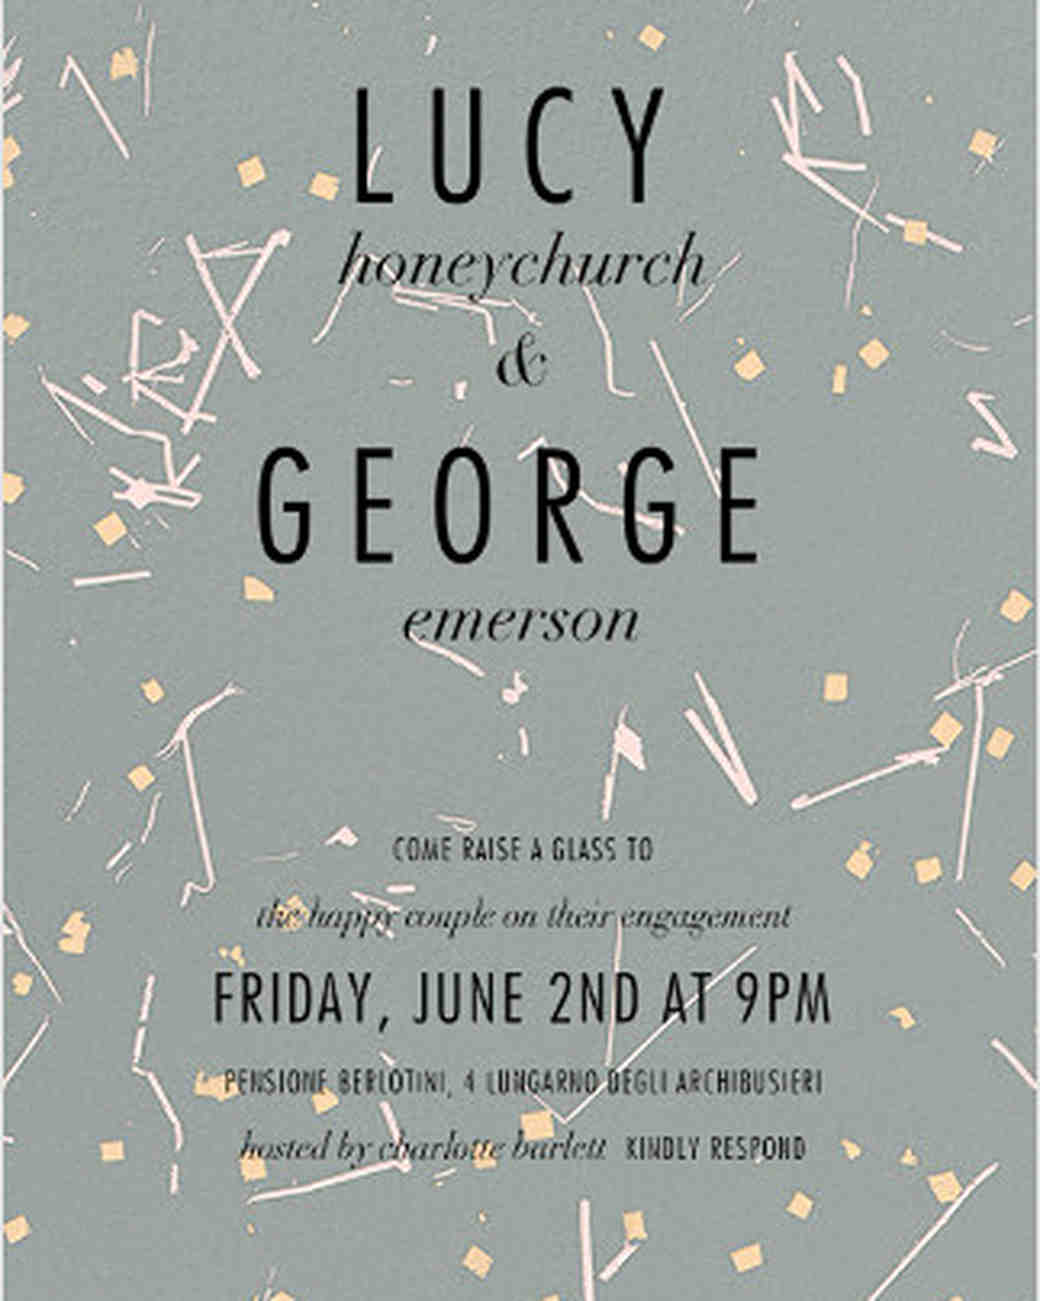 paperless-engagement-party-invitations-paperless-post-confetti-0416.jpg